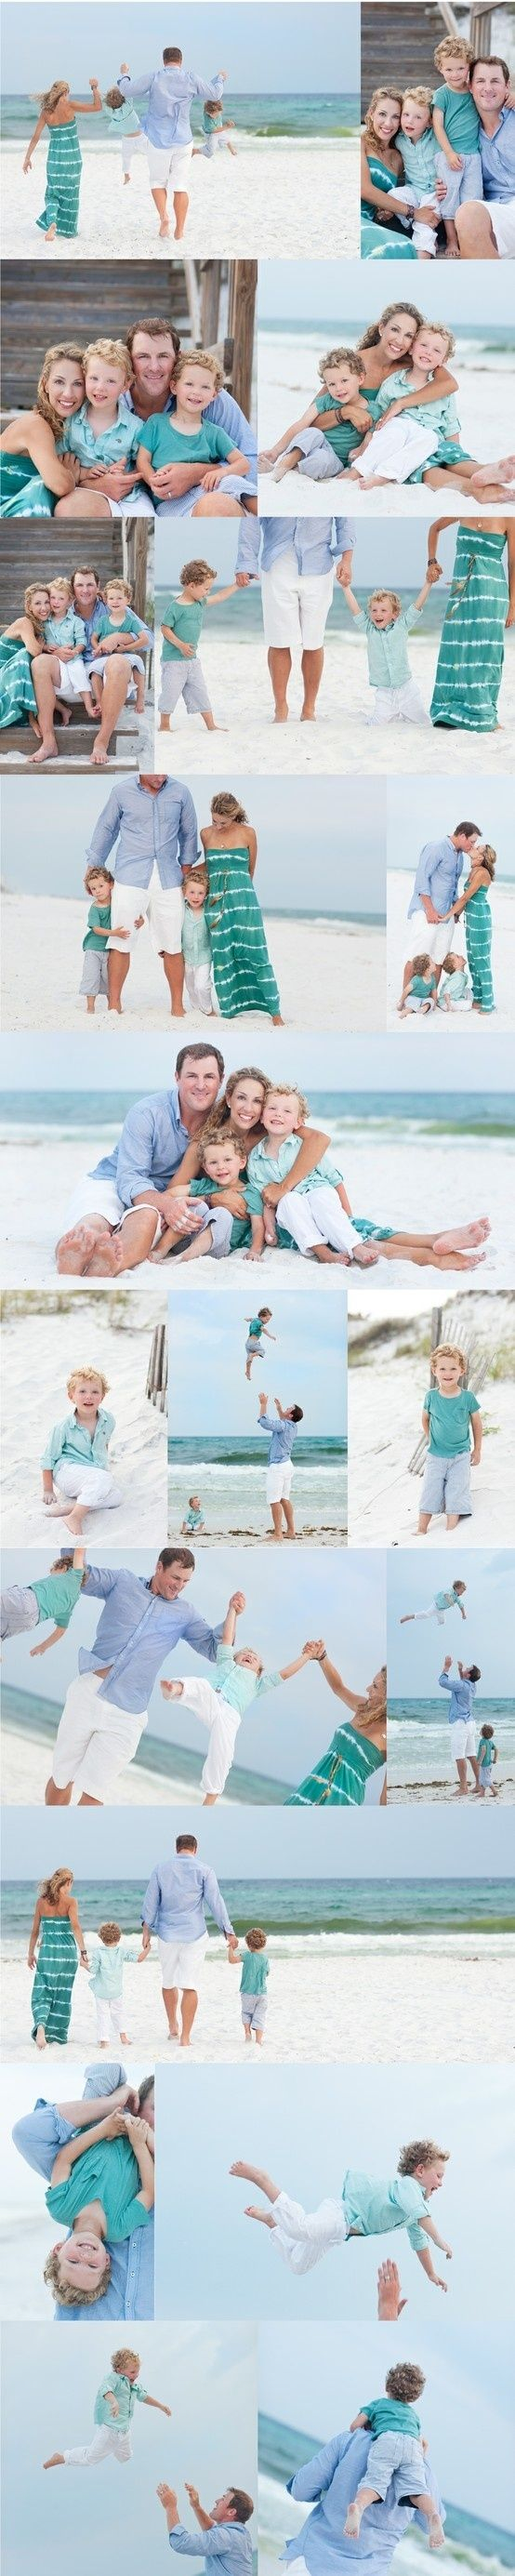 pretty family pictures on the beach!: Photo Ideas, Beach Session, Family Photos